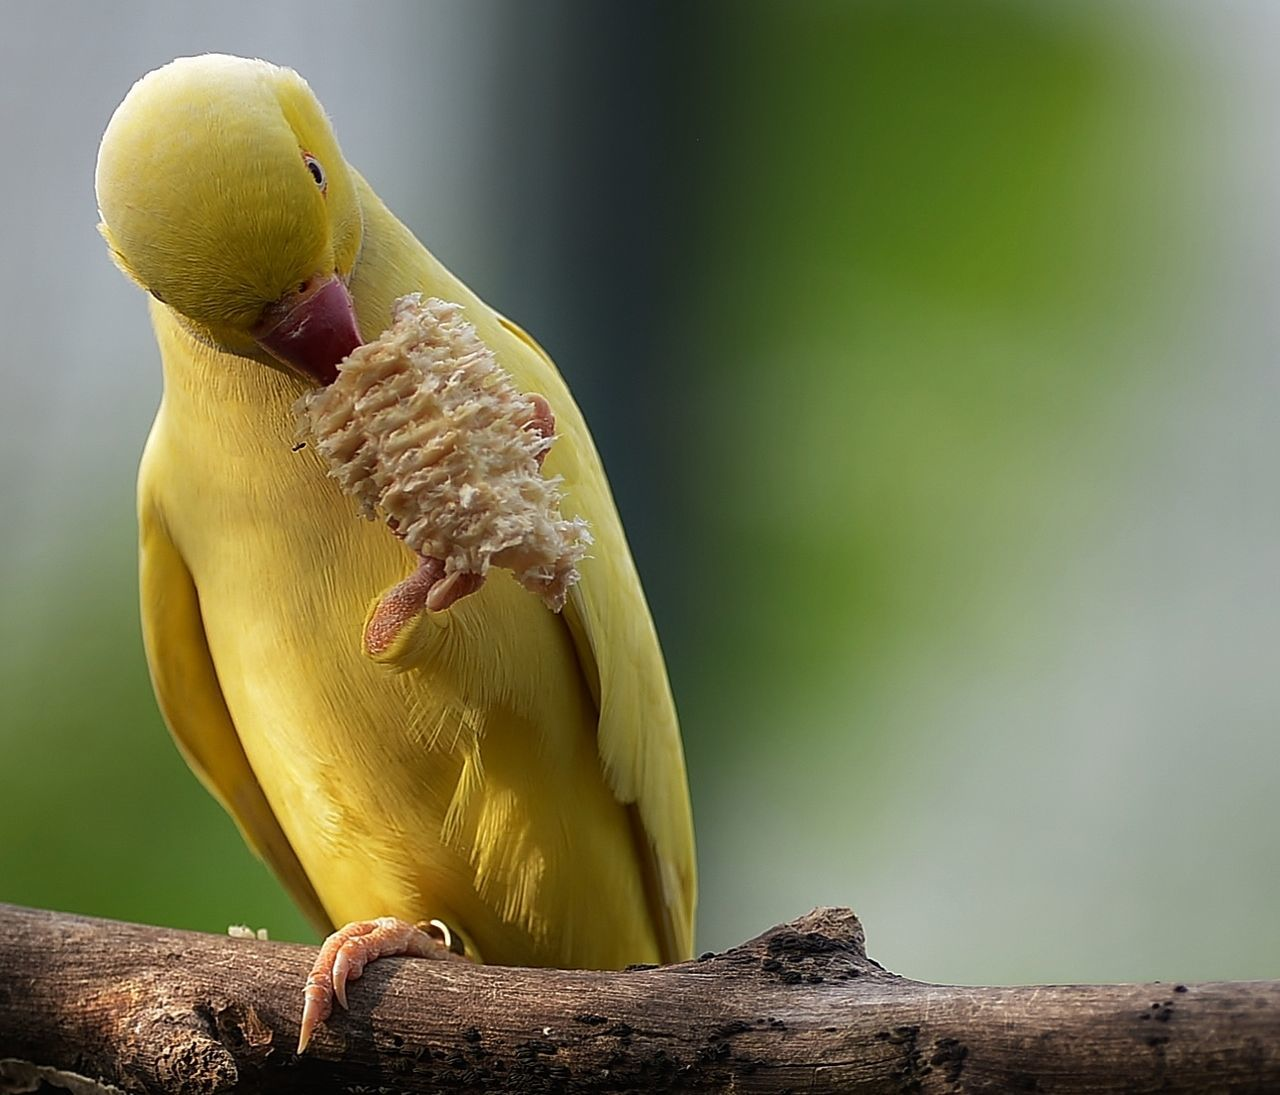 bird, parrot, animal themes, perching, animal wildlife, animals in the wild, one animal, yellow, beak, no people, nature, outdoors, close-up, day, branch, beauty in nature, cockatoo, mammal